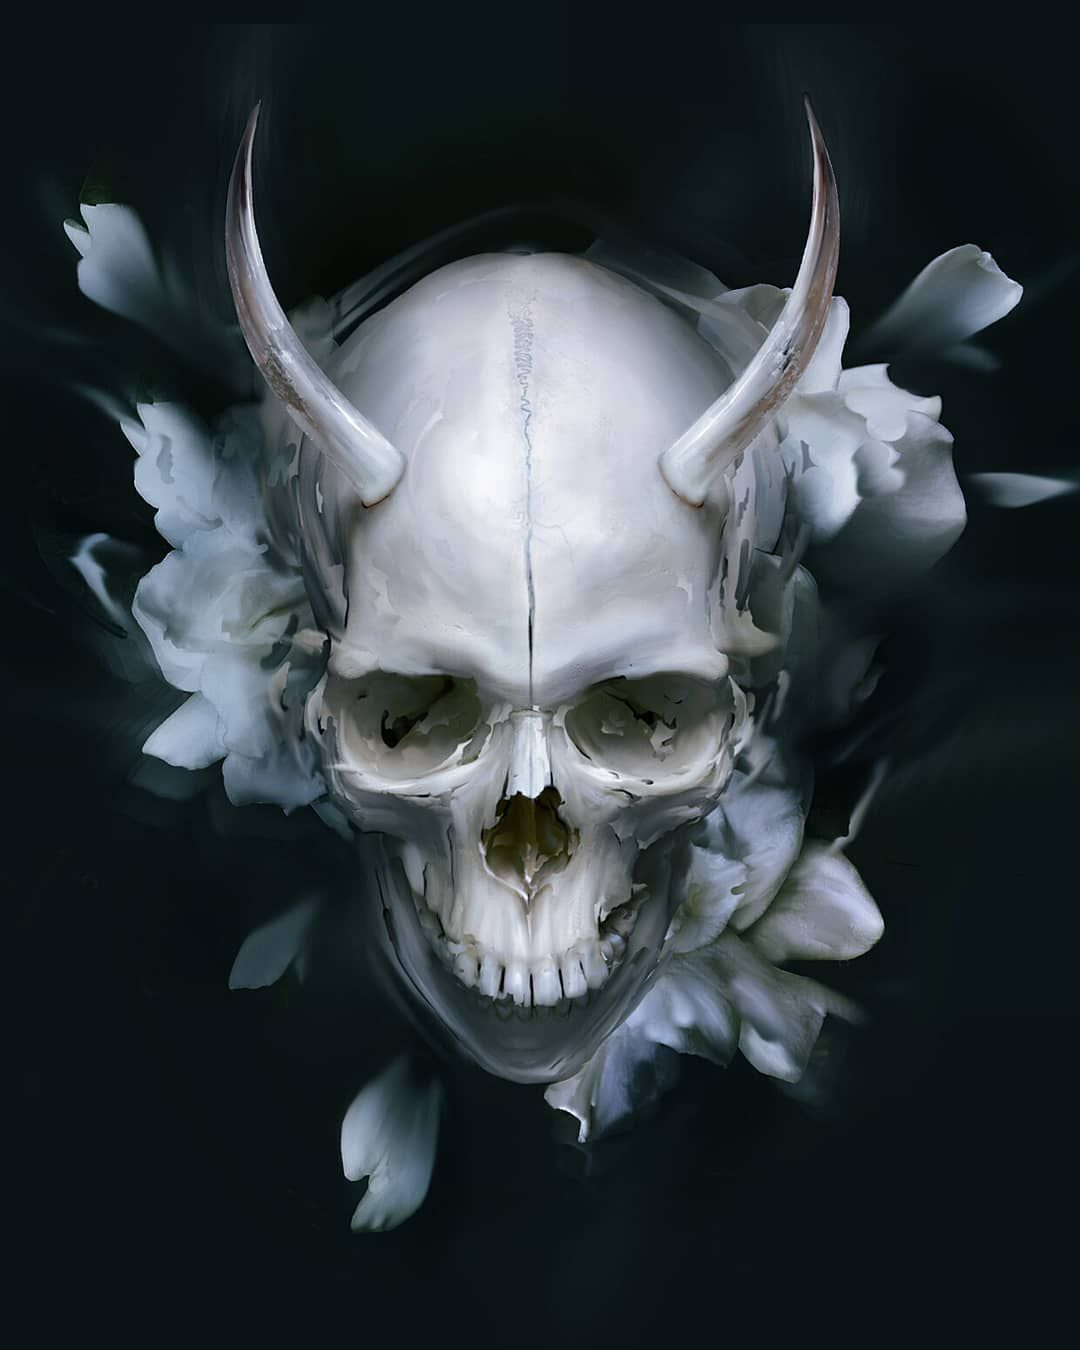 wallpaper wallpaper_engine fantasy fantasy_art Skull